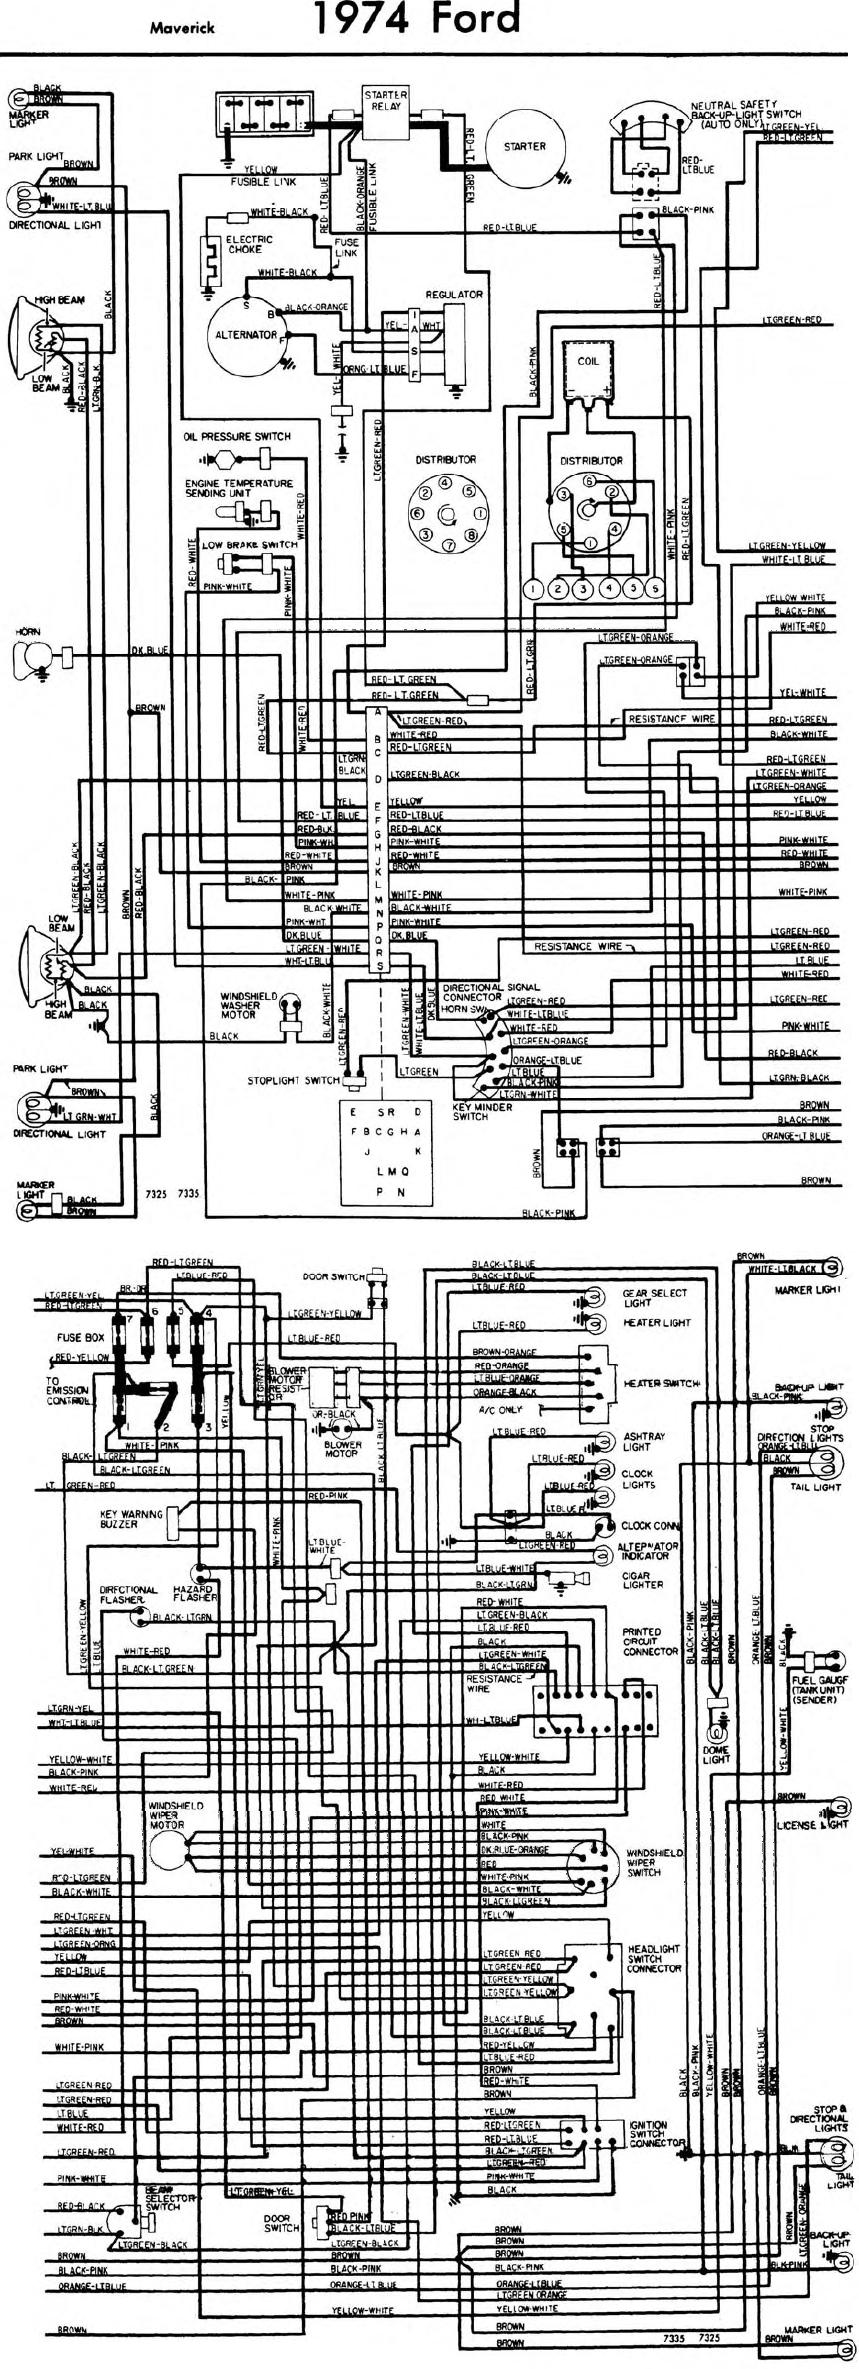 1975 ford f250 wiring diagram 1975 image wiring wiring diagram for 1975 ford maverick wiring discover your on 1975 ford f250 wiring diagram